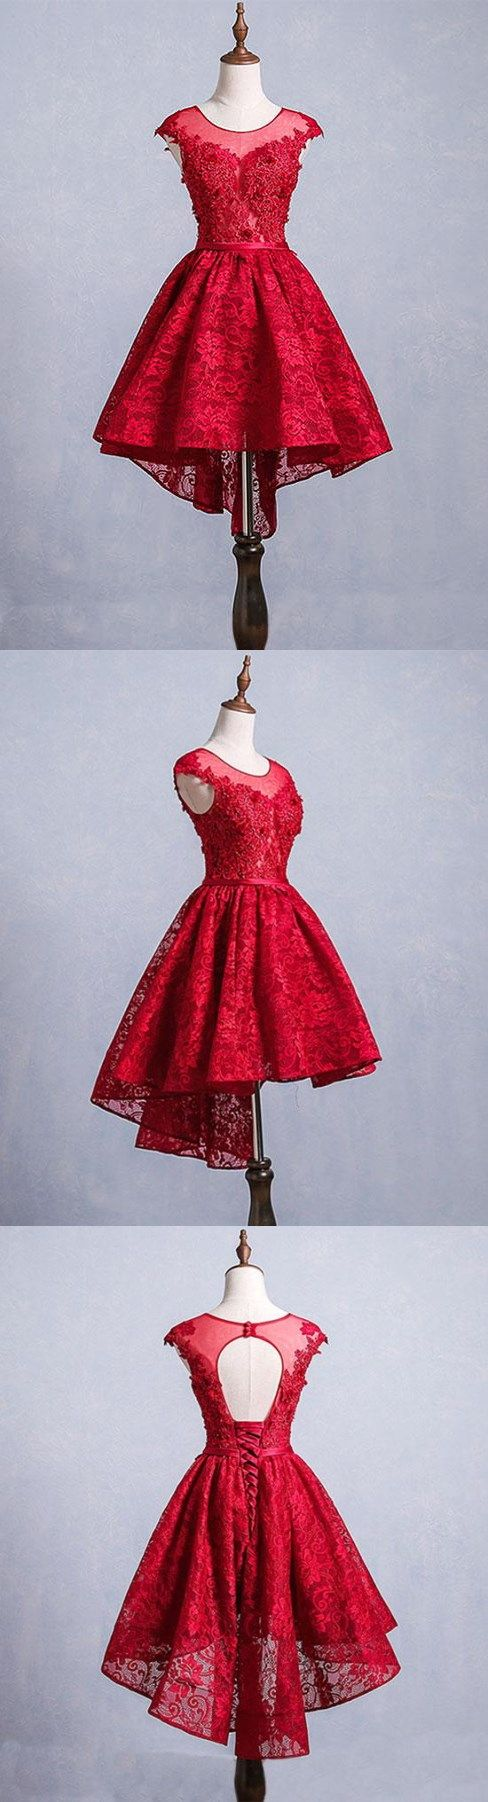 High low homecoming dresses scoop aline red short prom dress lace